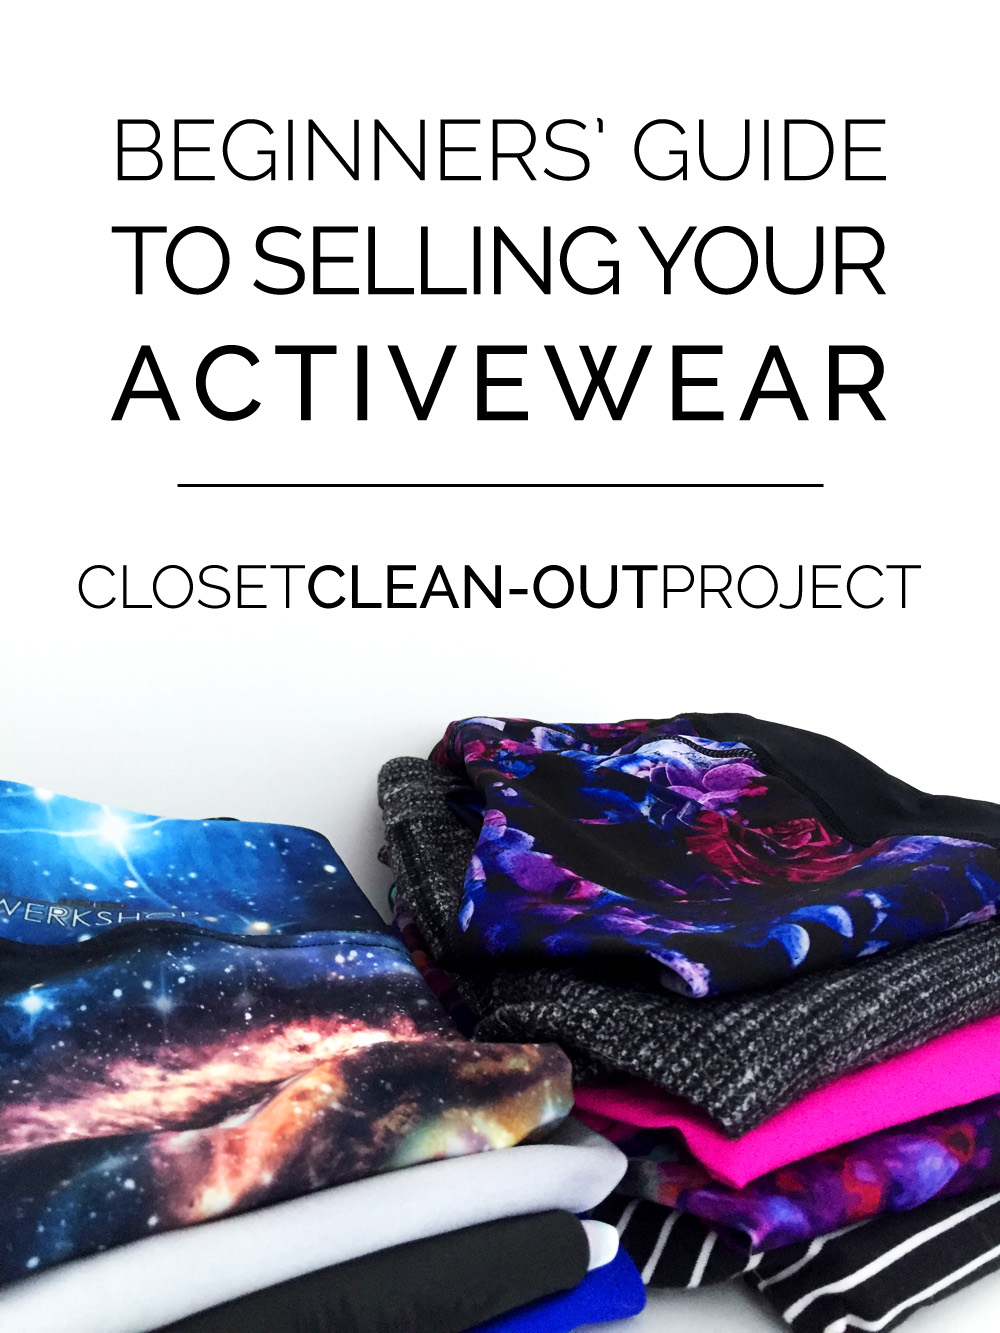 Sell Used Clothes Online >> Closet Clean-Out: How to List Your Activewear on eBay ...